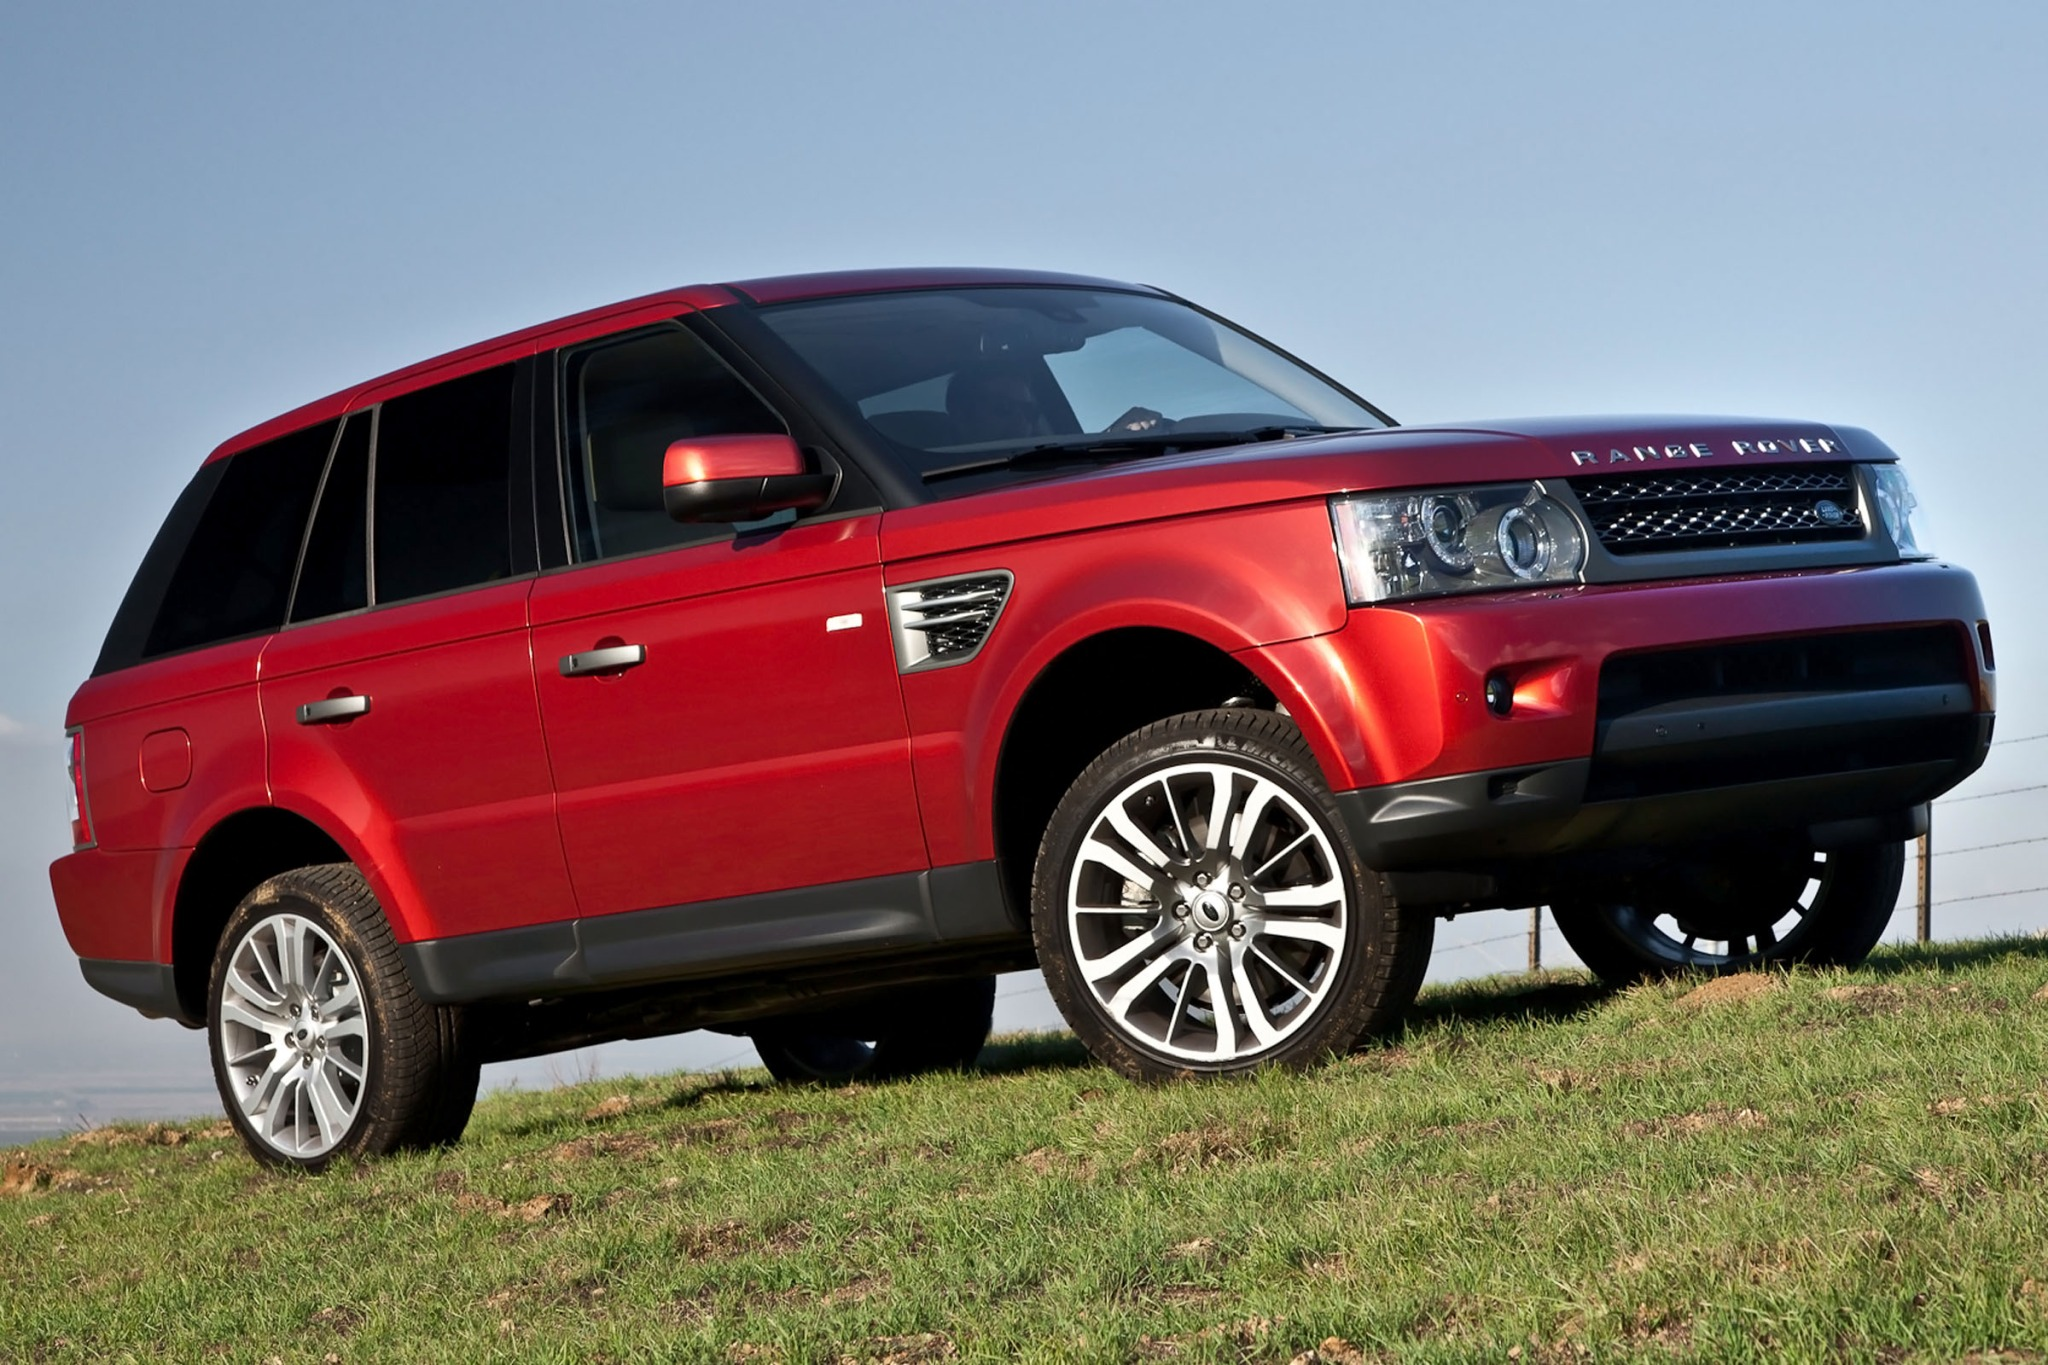 2013 land rover range rover sport image 2. Black Bedroom Furniture Sets. Home Design Ideas